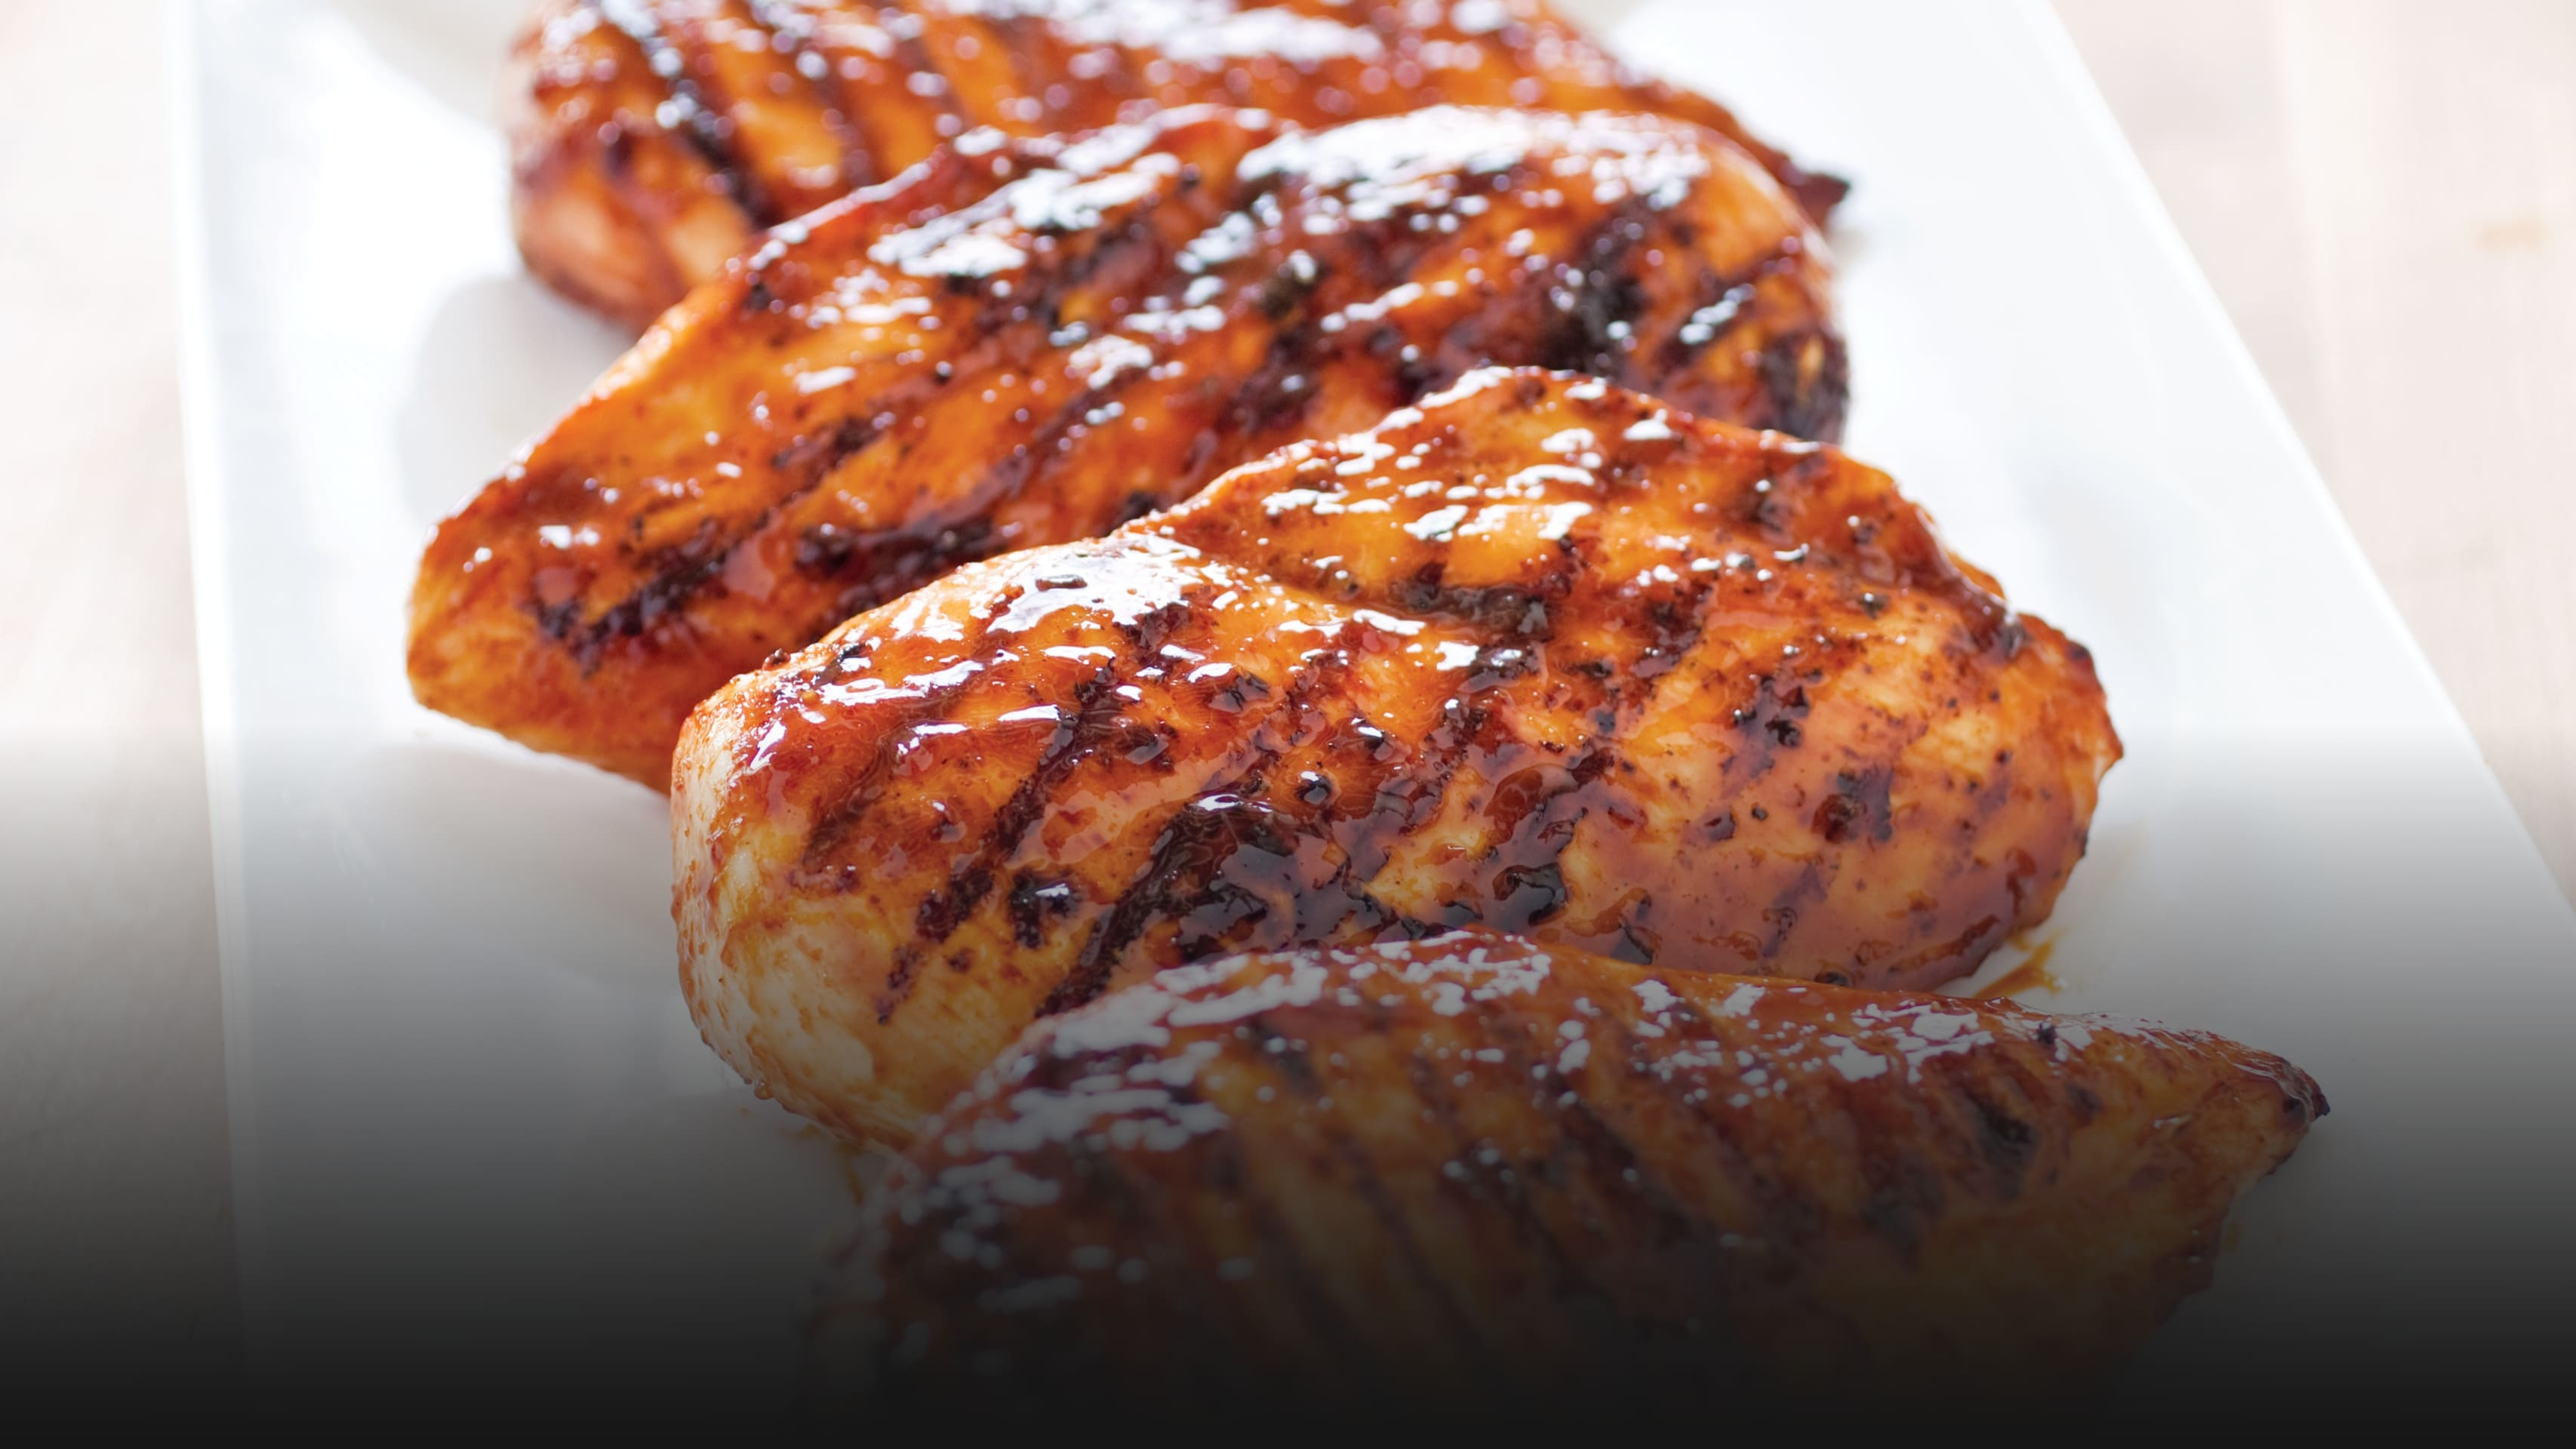 The Secret Ingredient for Better Browning on Your Grilled Chicken Breasts